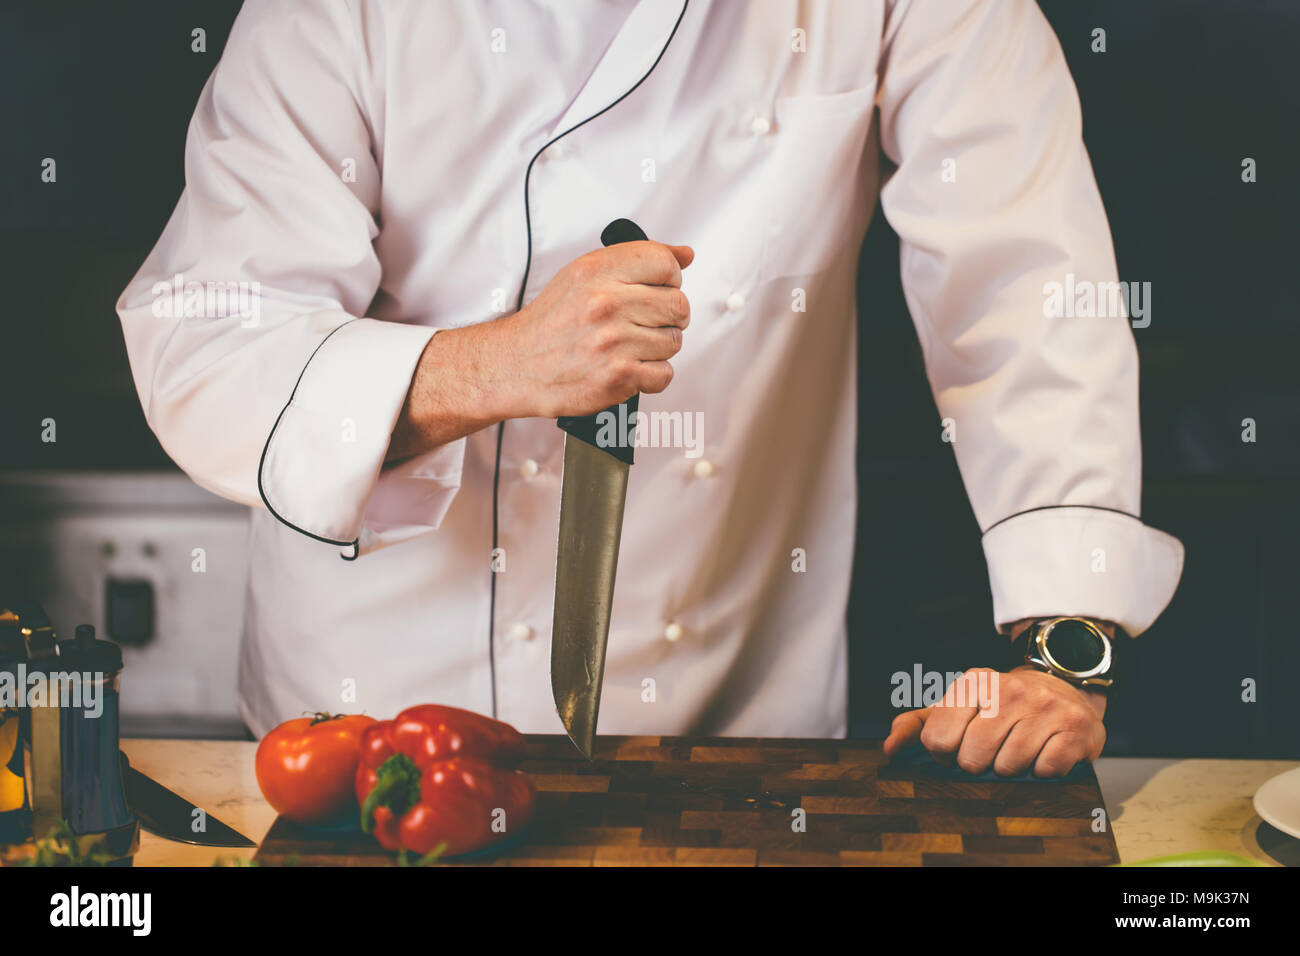 close up photo of a large knife being stucked on the cutting board. angree shef. forceful cook.lead cook - Stock Image